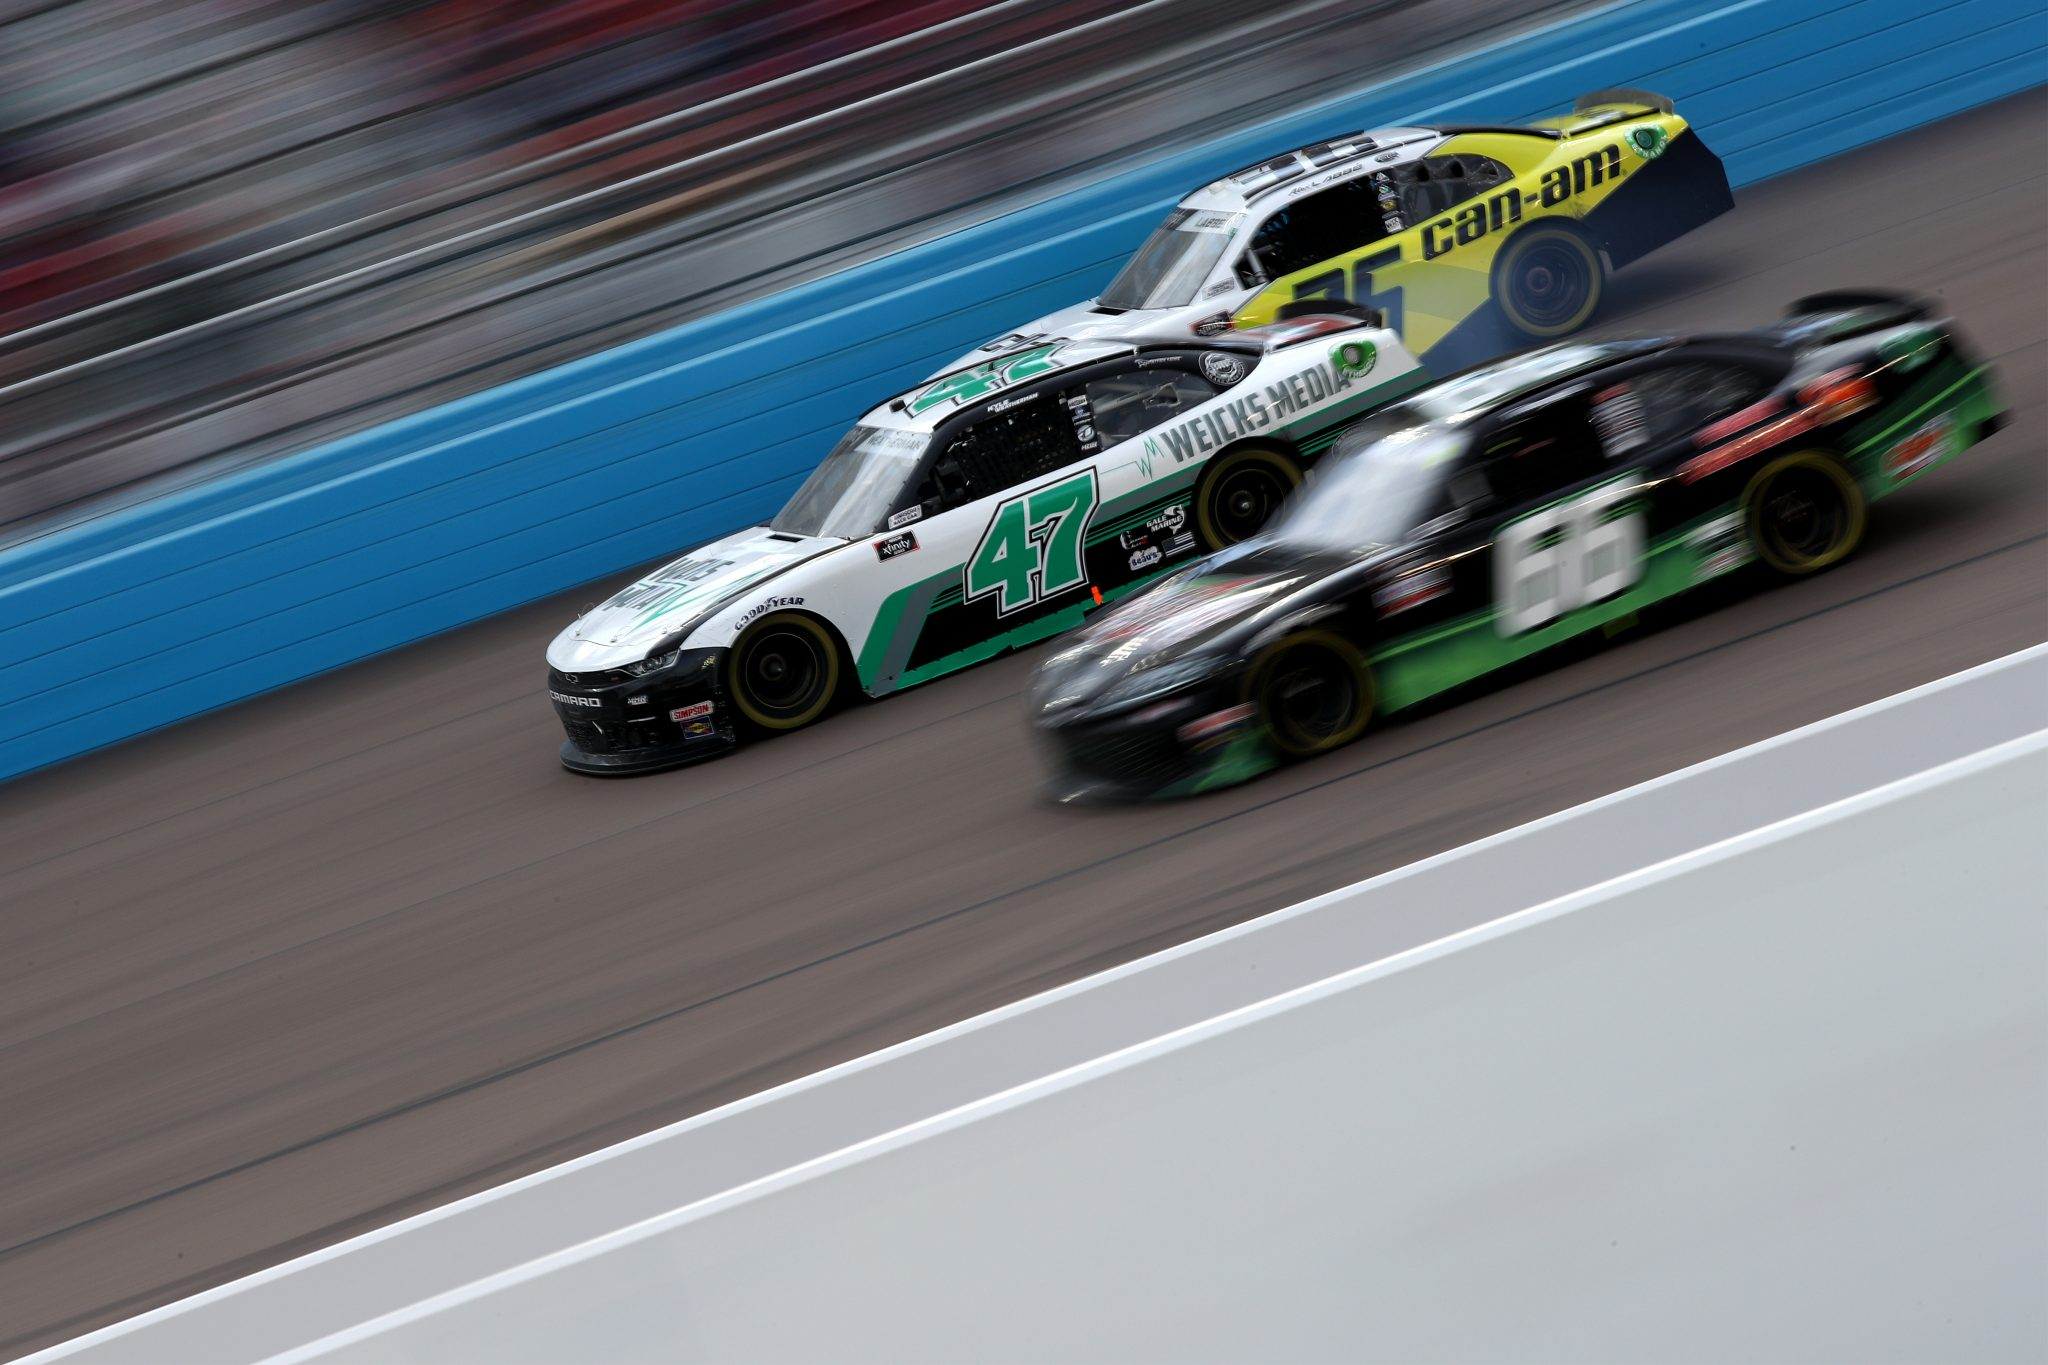 AVONDALE, ARIZONA - MARCH 13: Kyle Weatherman, driver of the #47 Weicks Media Chevrolet, drives during the NASCAR Xfinity Series Call 811 Before You Dig 200 presented by Arizona 811 at Phoenix Raceway on March 13, 2021 in Avondale, Arizona. (Photo by Sean Gardner/Getty Images) | Getty Images